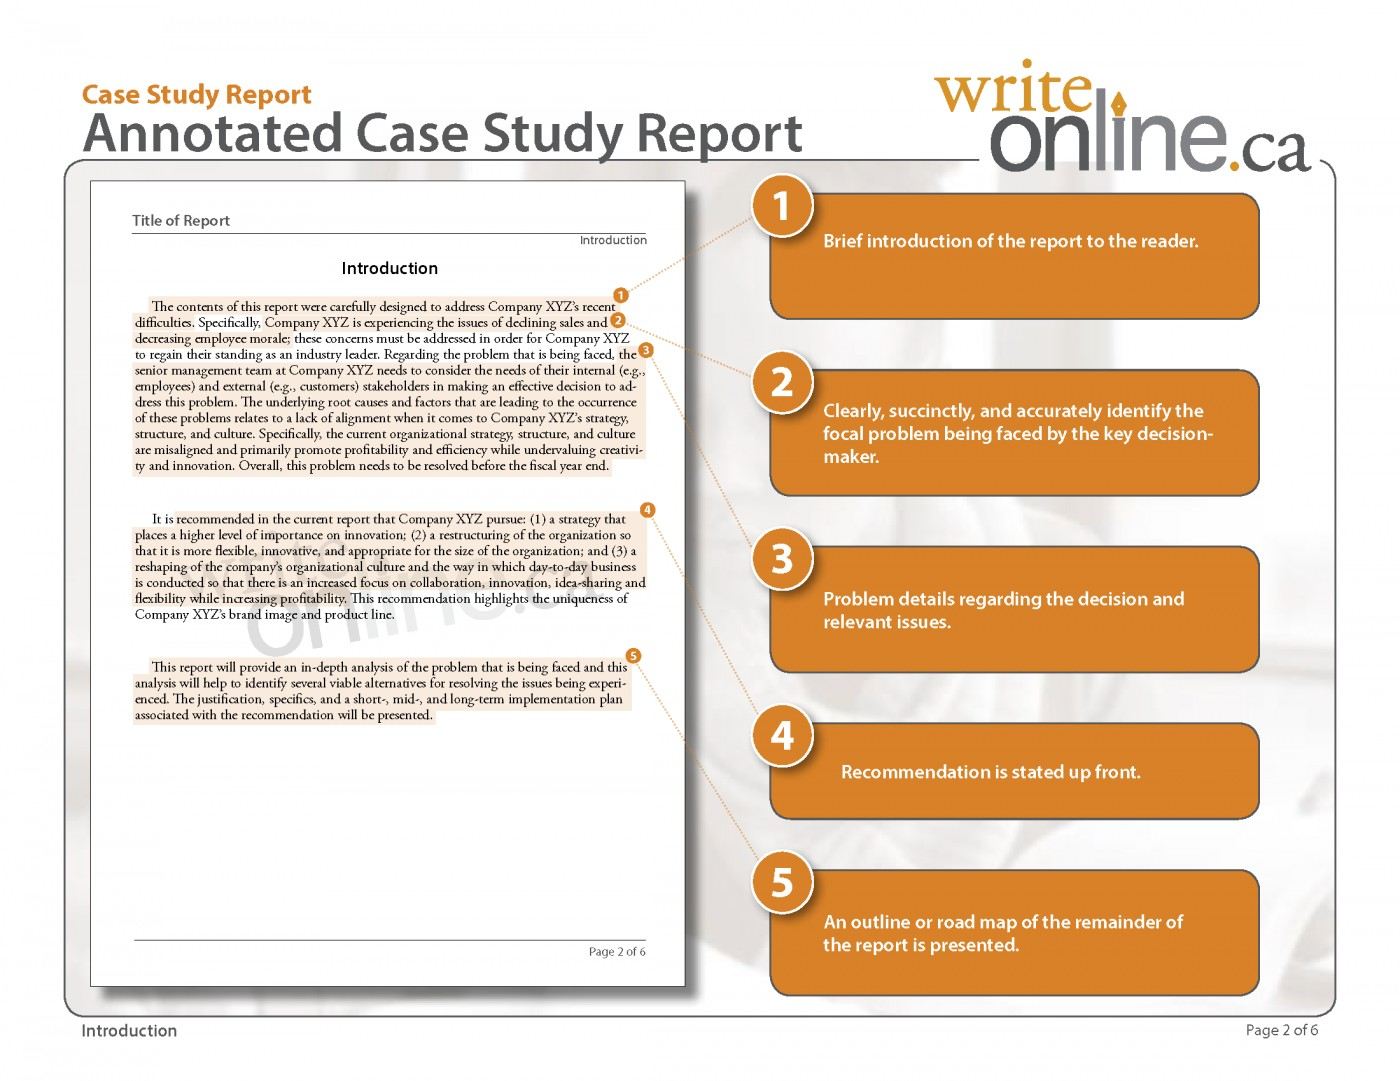 009 Research Paper Casestudy Annotatedfull Page 2 Component Of Archaicawful Pdf Parts Chapter Quantitative 1400